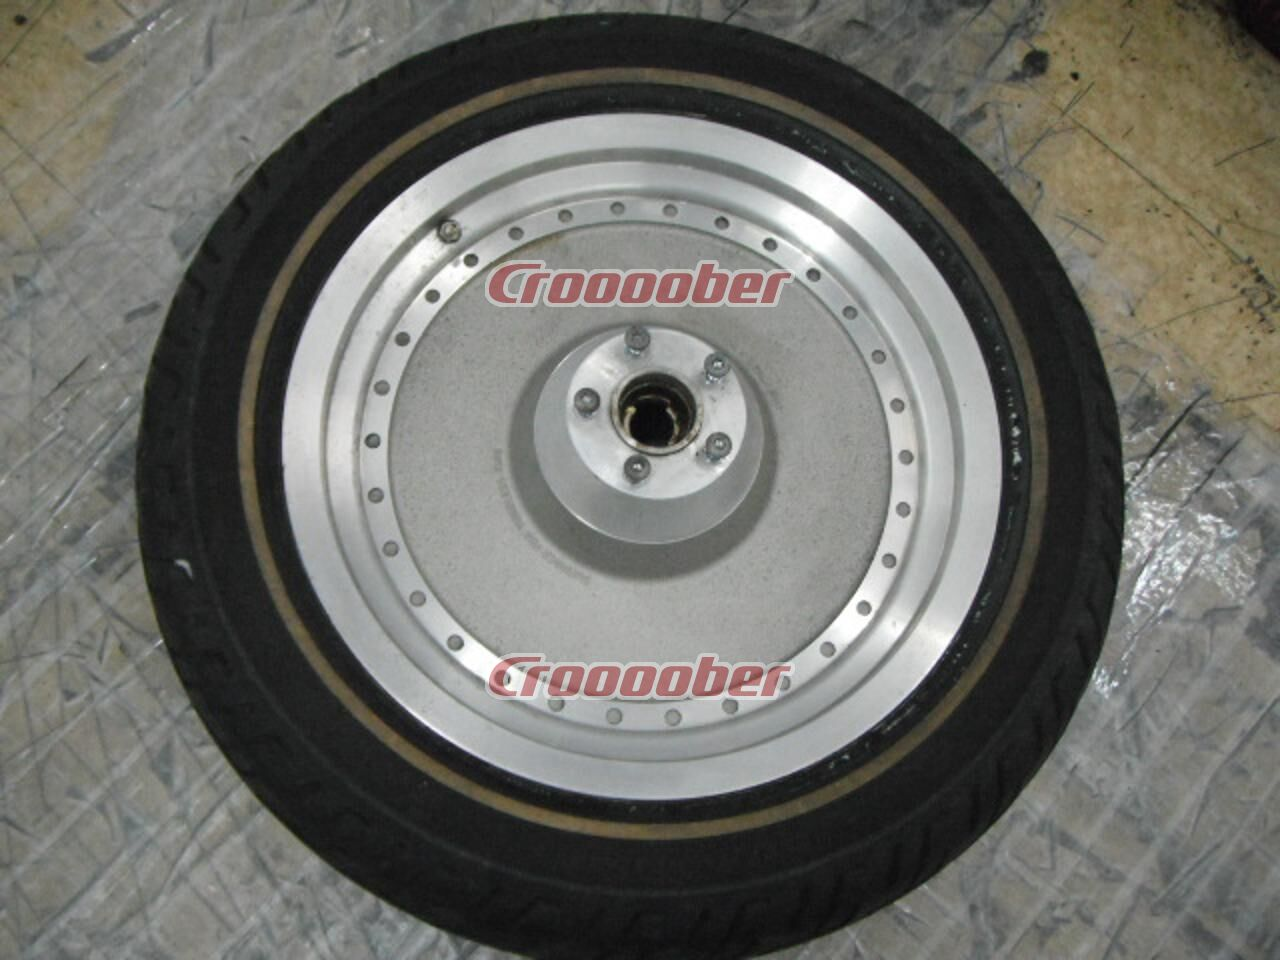 Used Harley Davidson Wheels >> Harley Harley Davidson Original Rear Wheel Rims For Sale Croooober